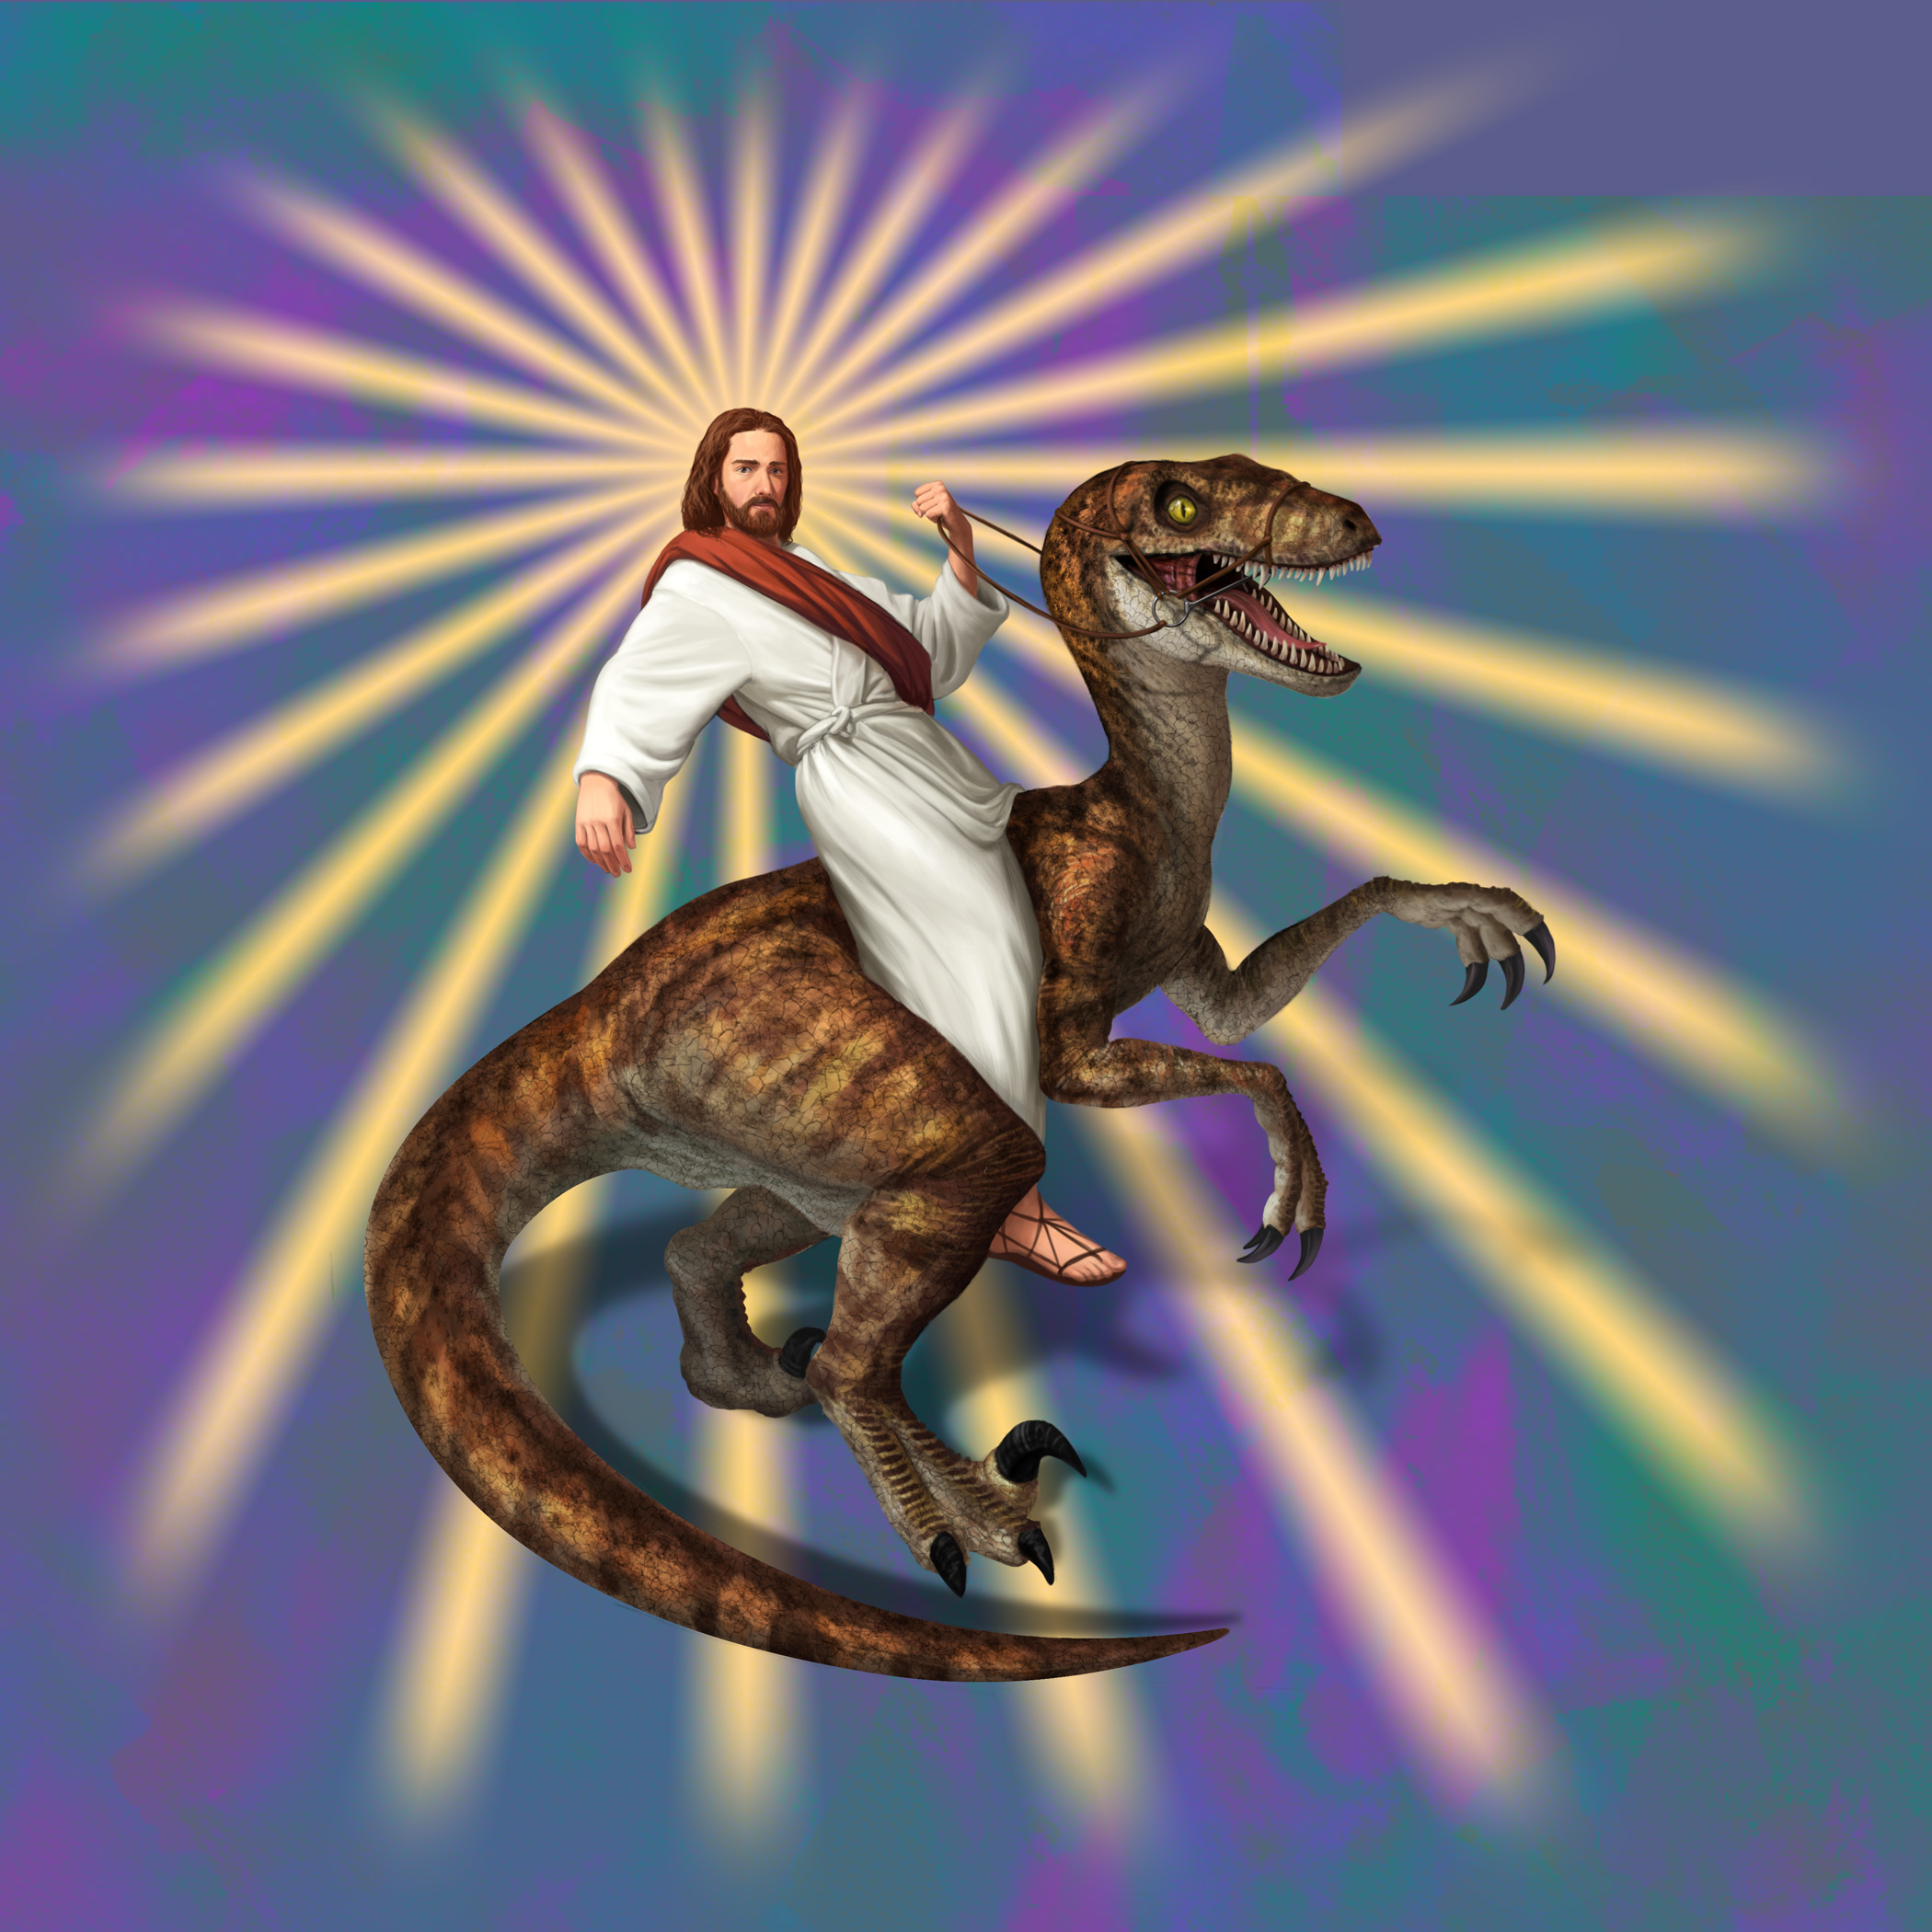 We Don't Know If Jesus Ever Rode Dinosaurs... But He Probably Did!